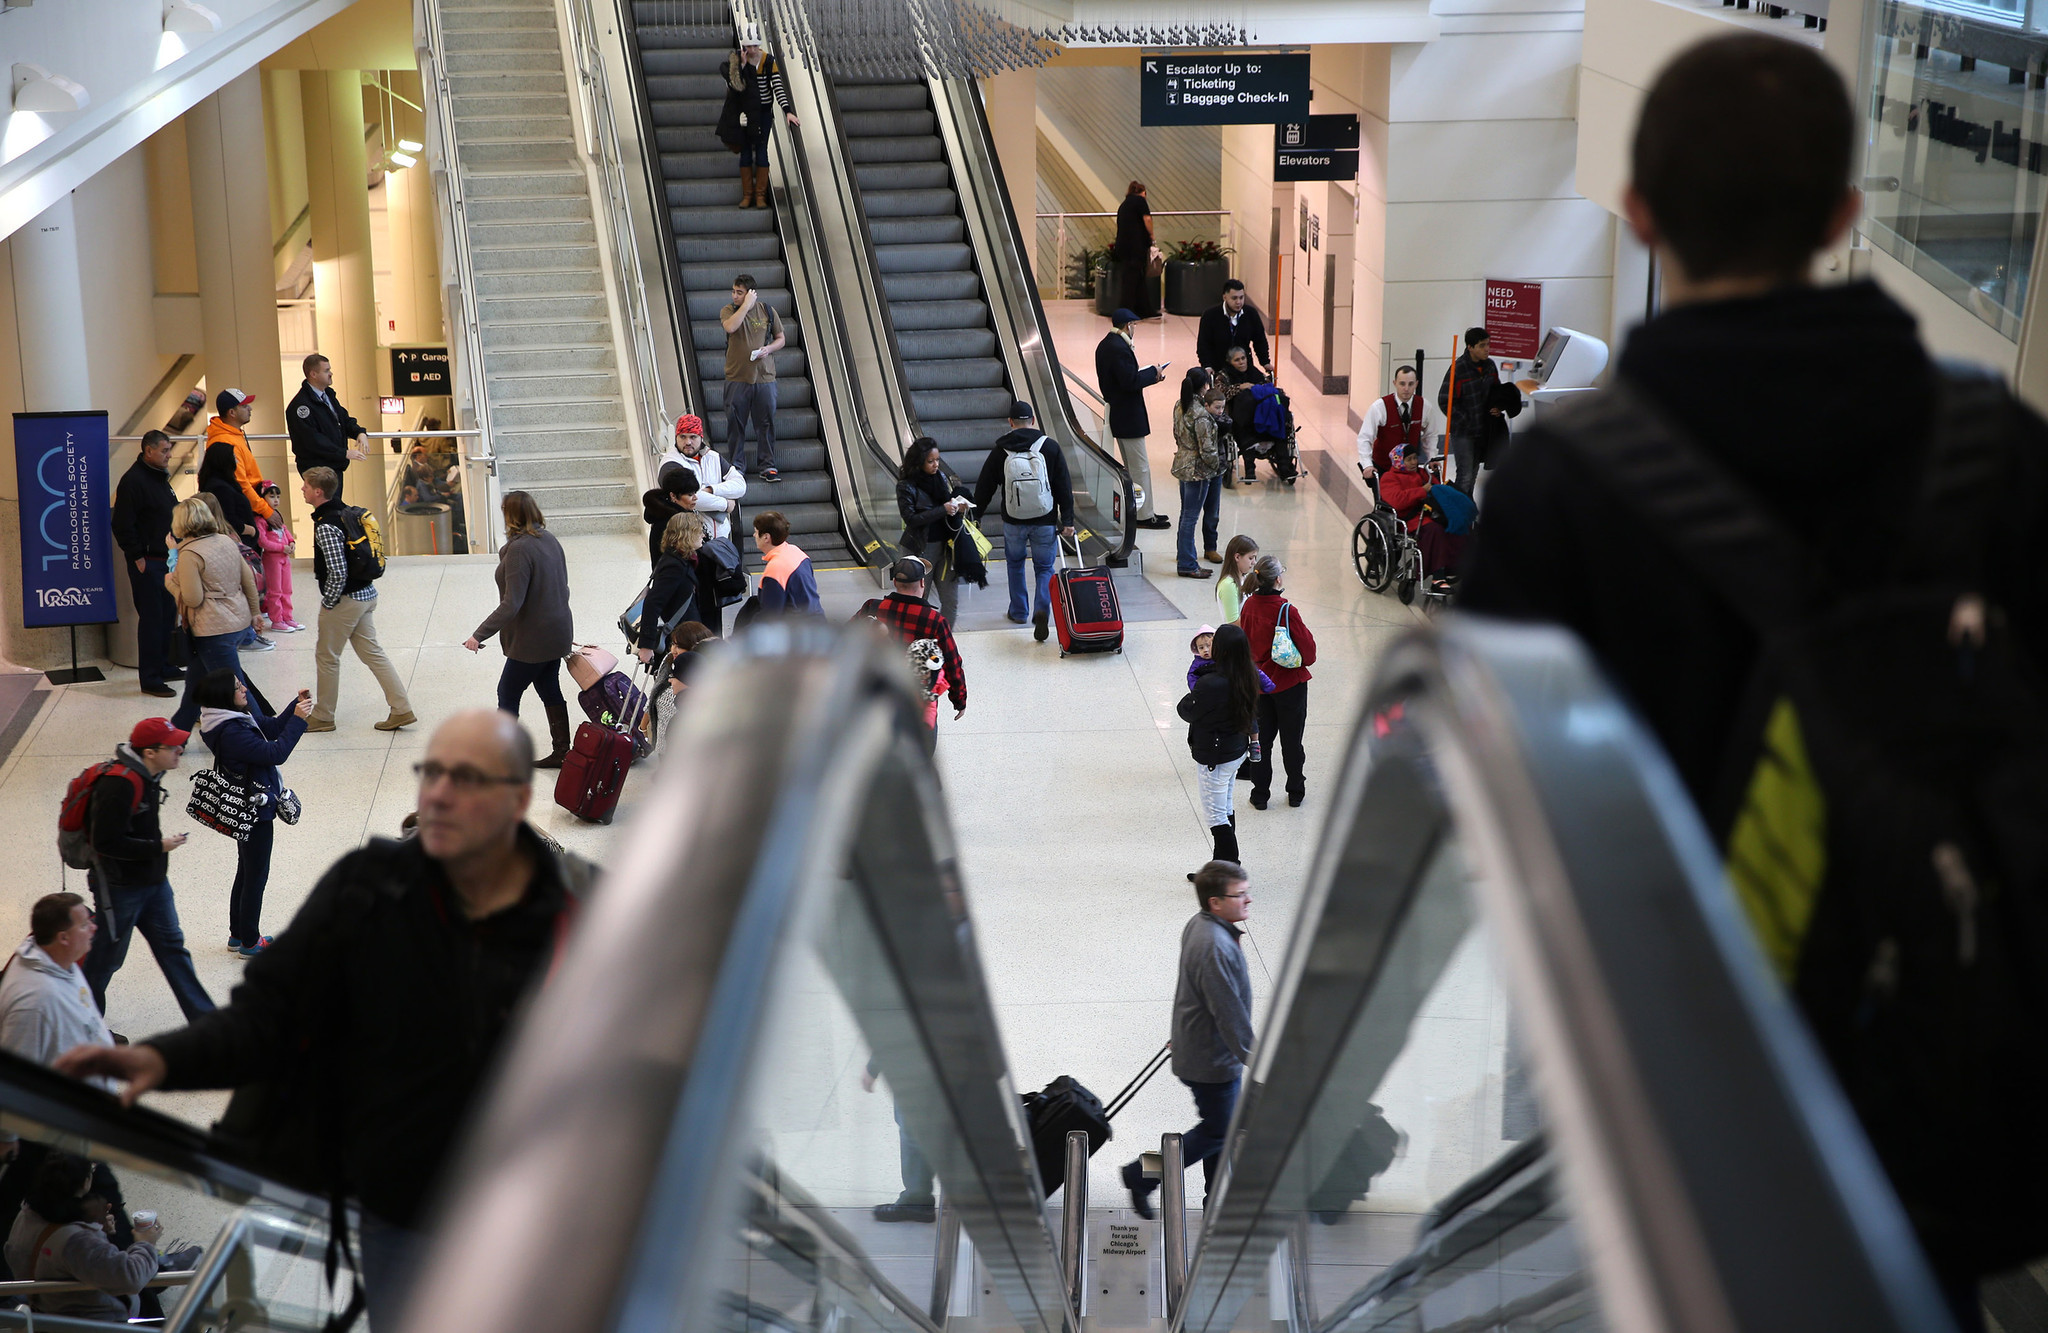 Mythbuster: Thanksgiving Eve not busiest for air travel